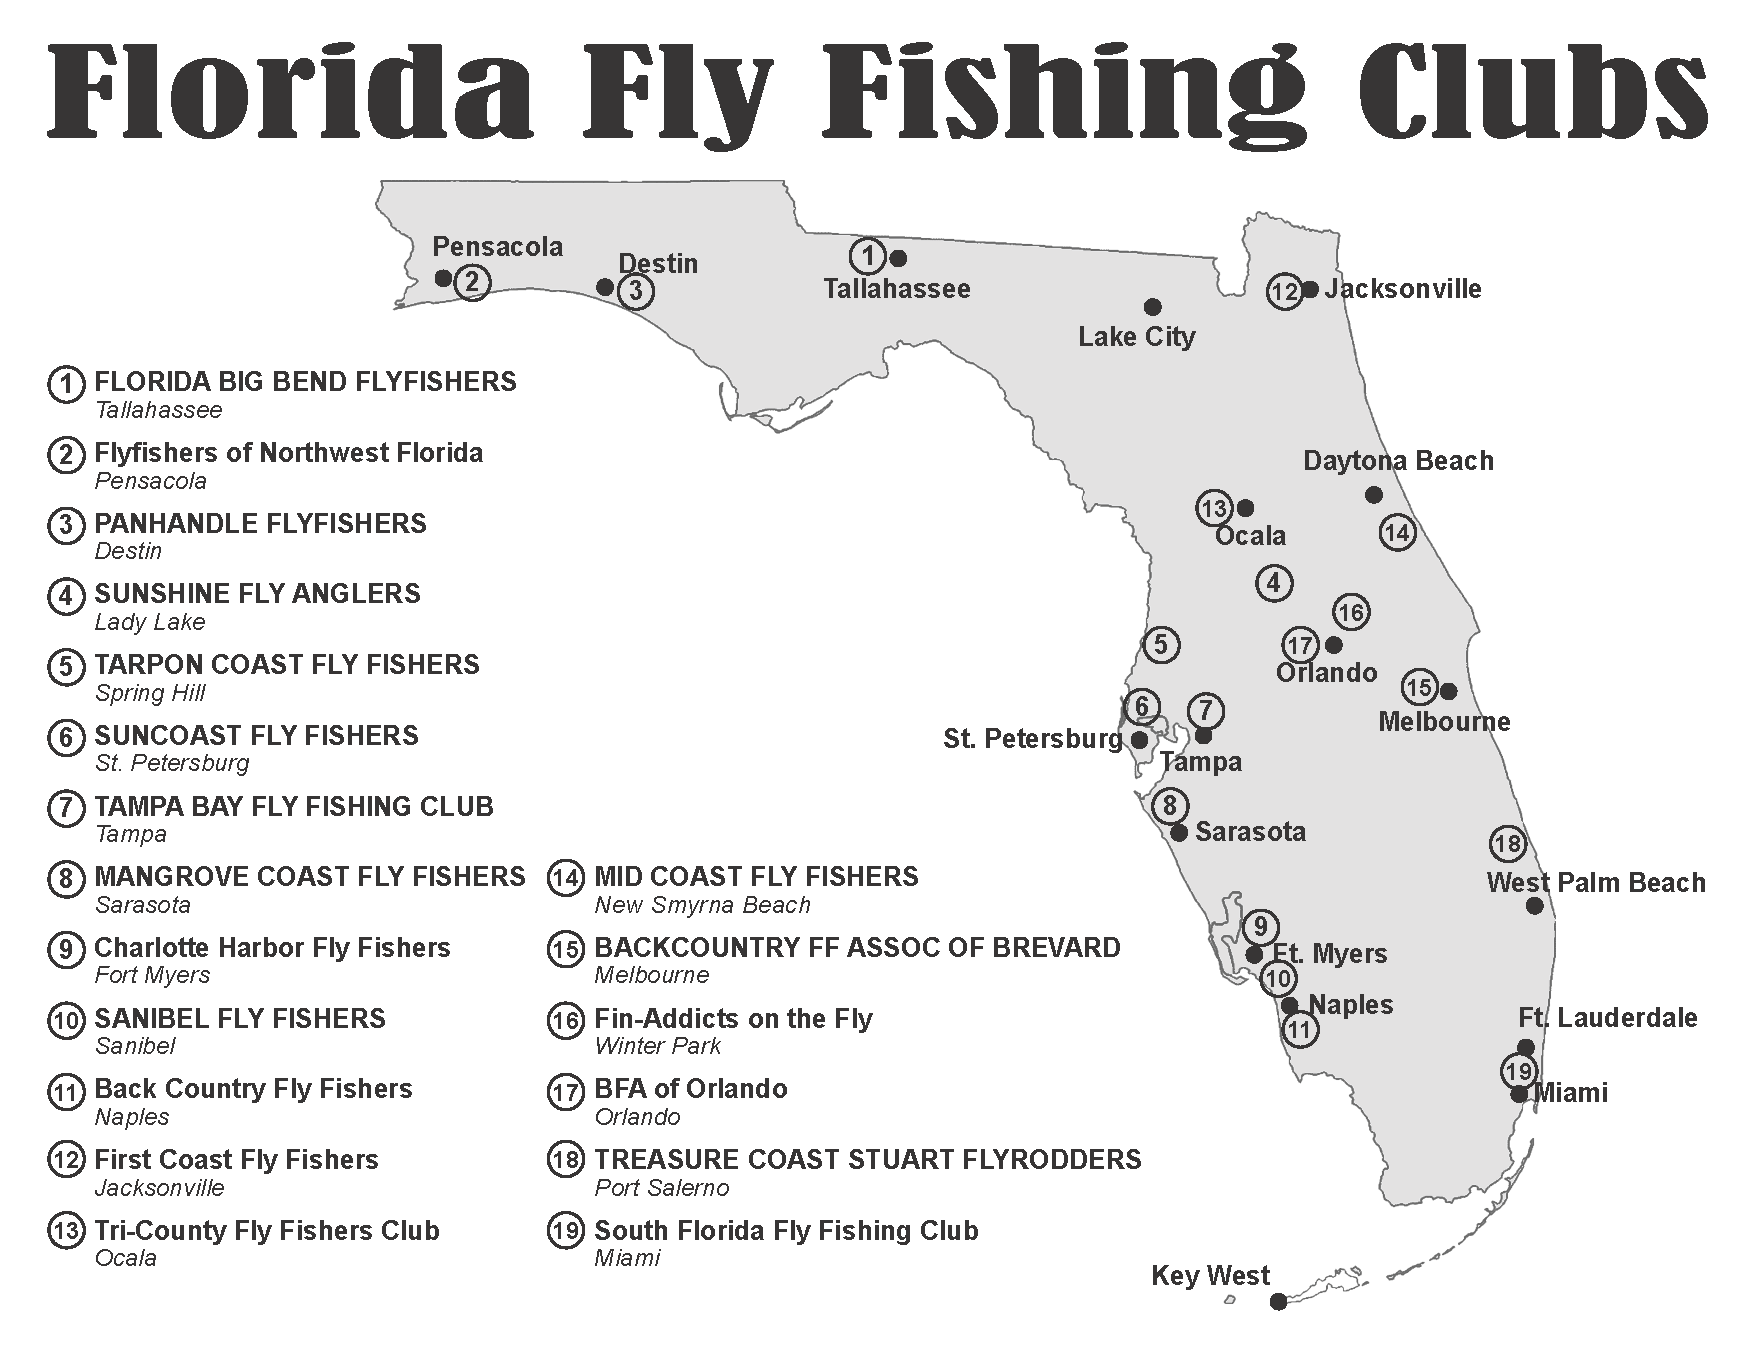 Florida fly fishing clubs mangrove coast fly fishers for Fly fishing clubs